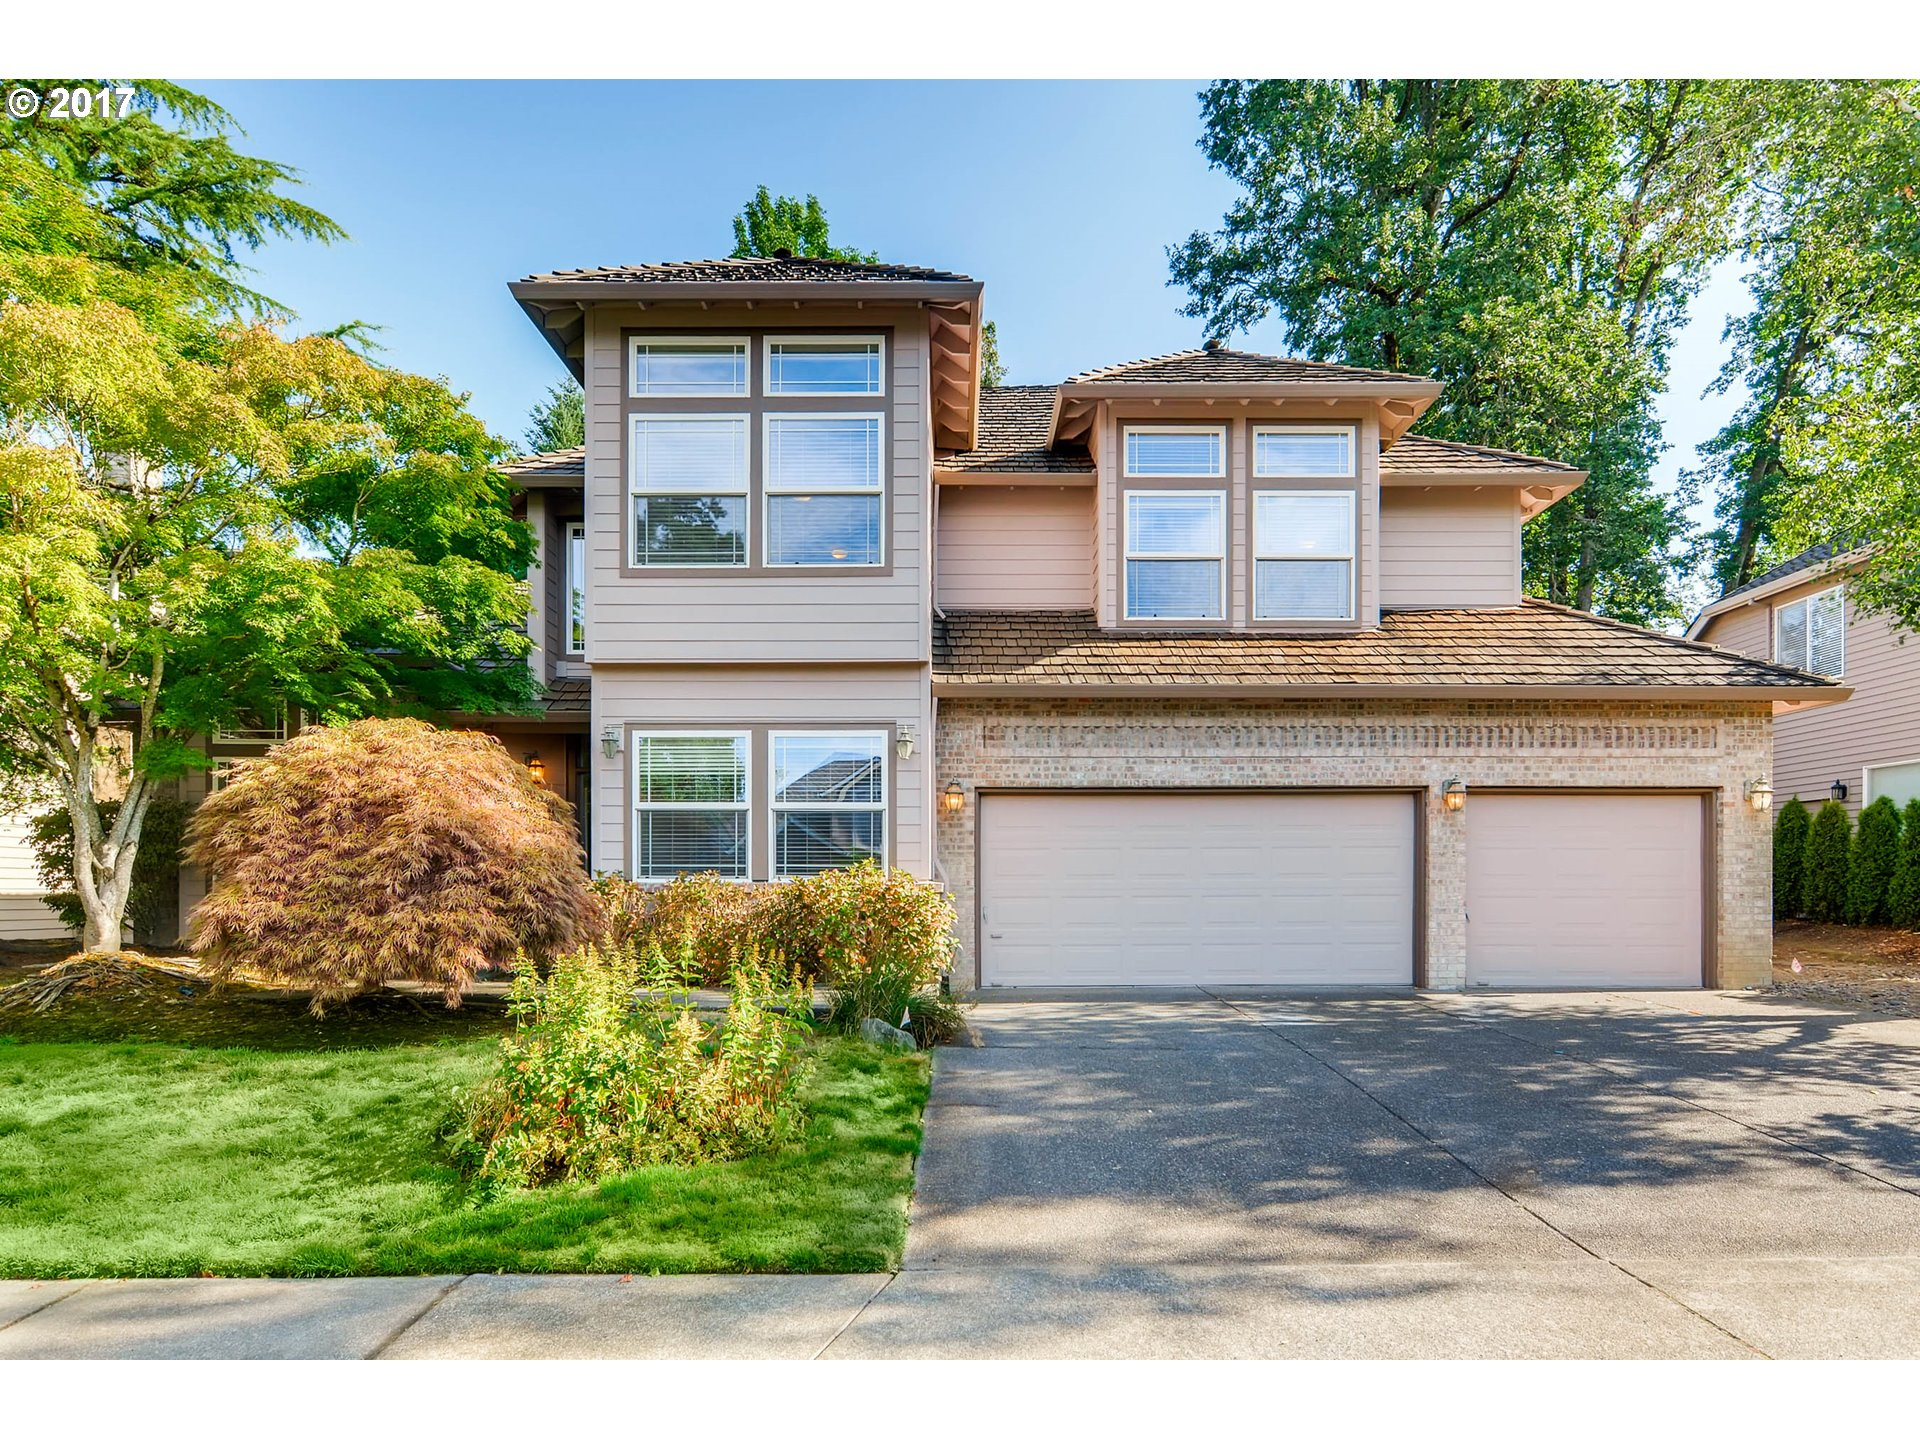 13845 AMBERWOOD CIR, Lake Oswego, OR 97035